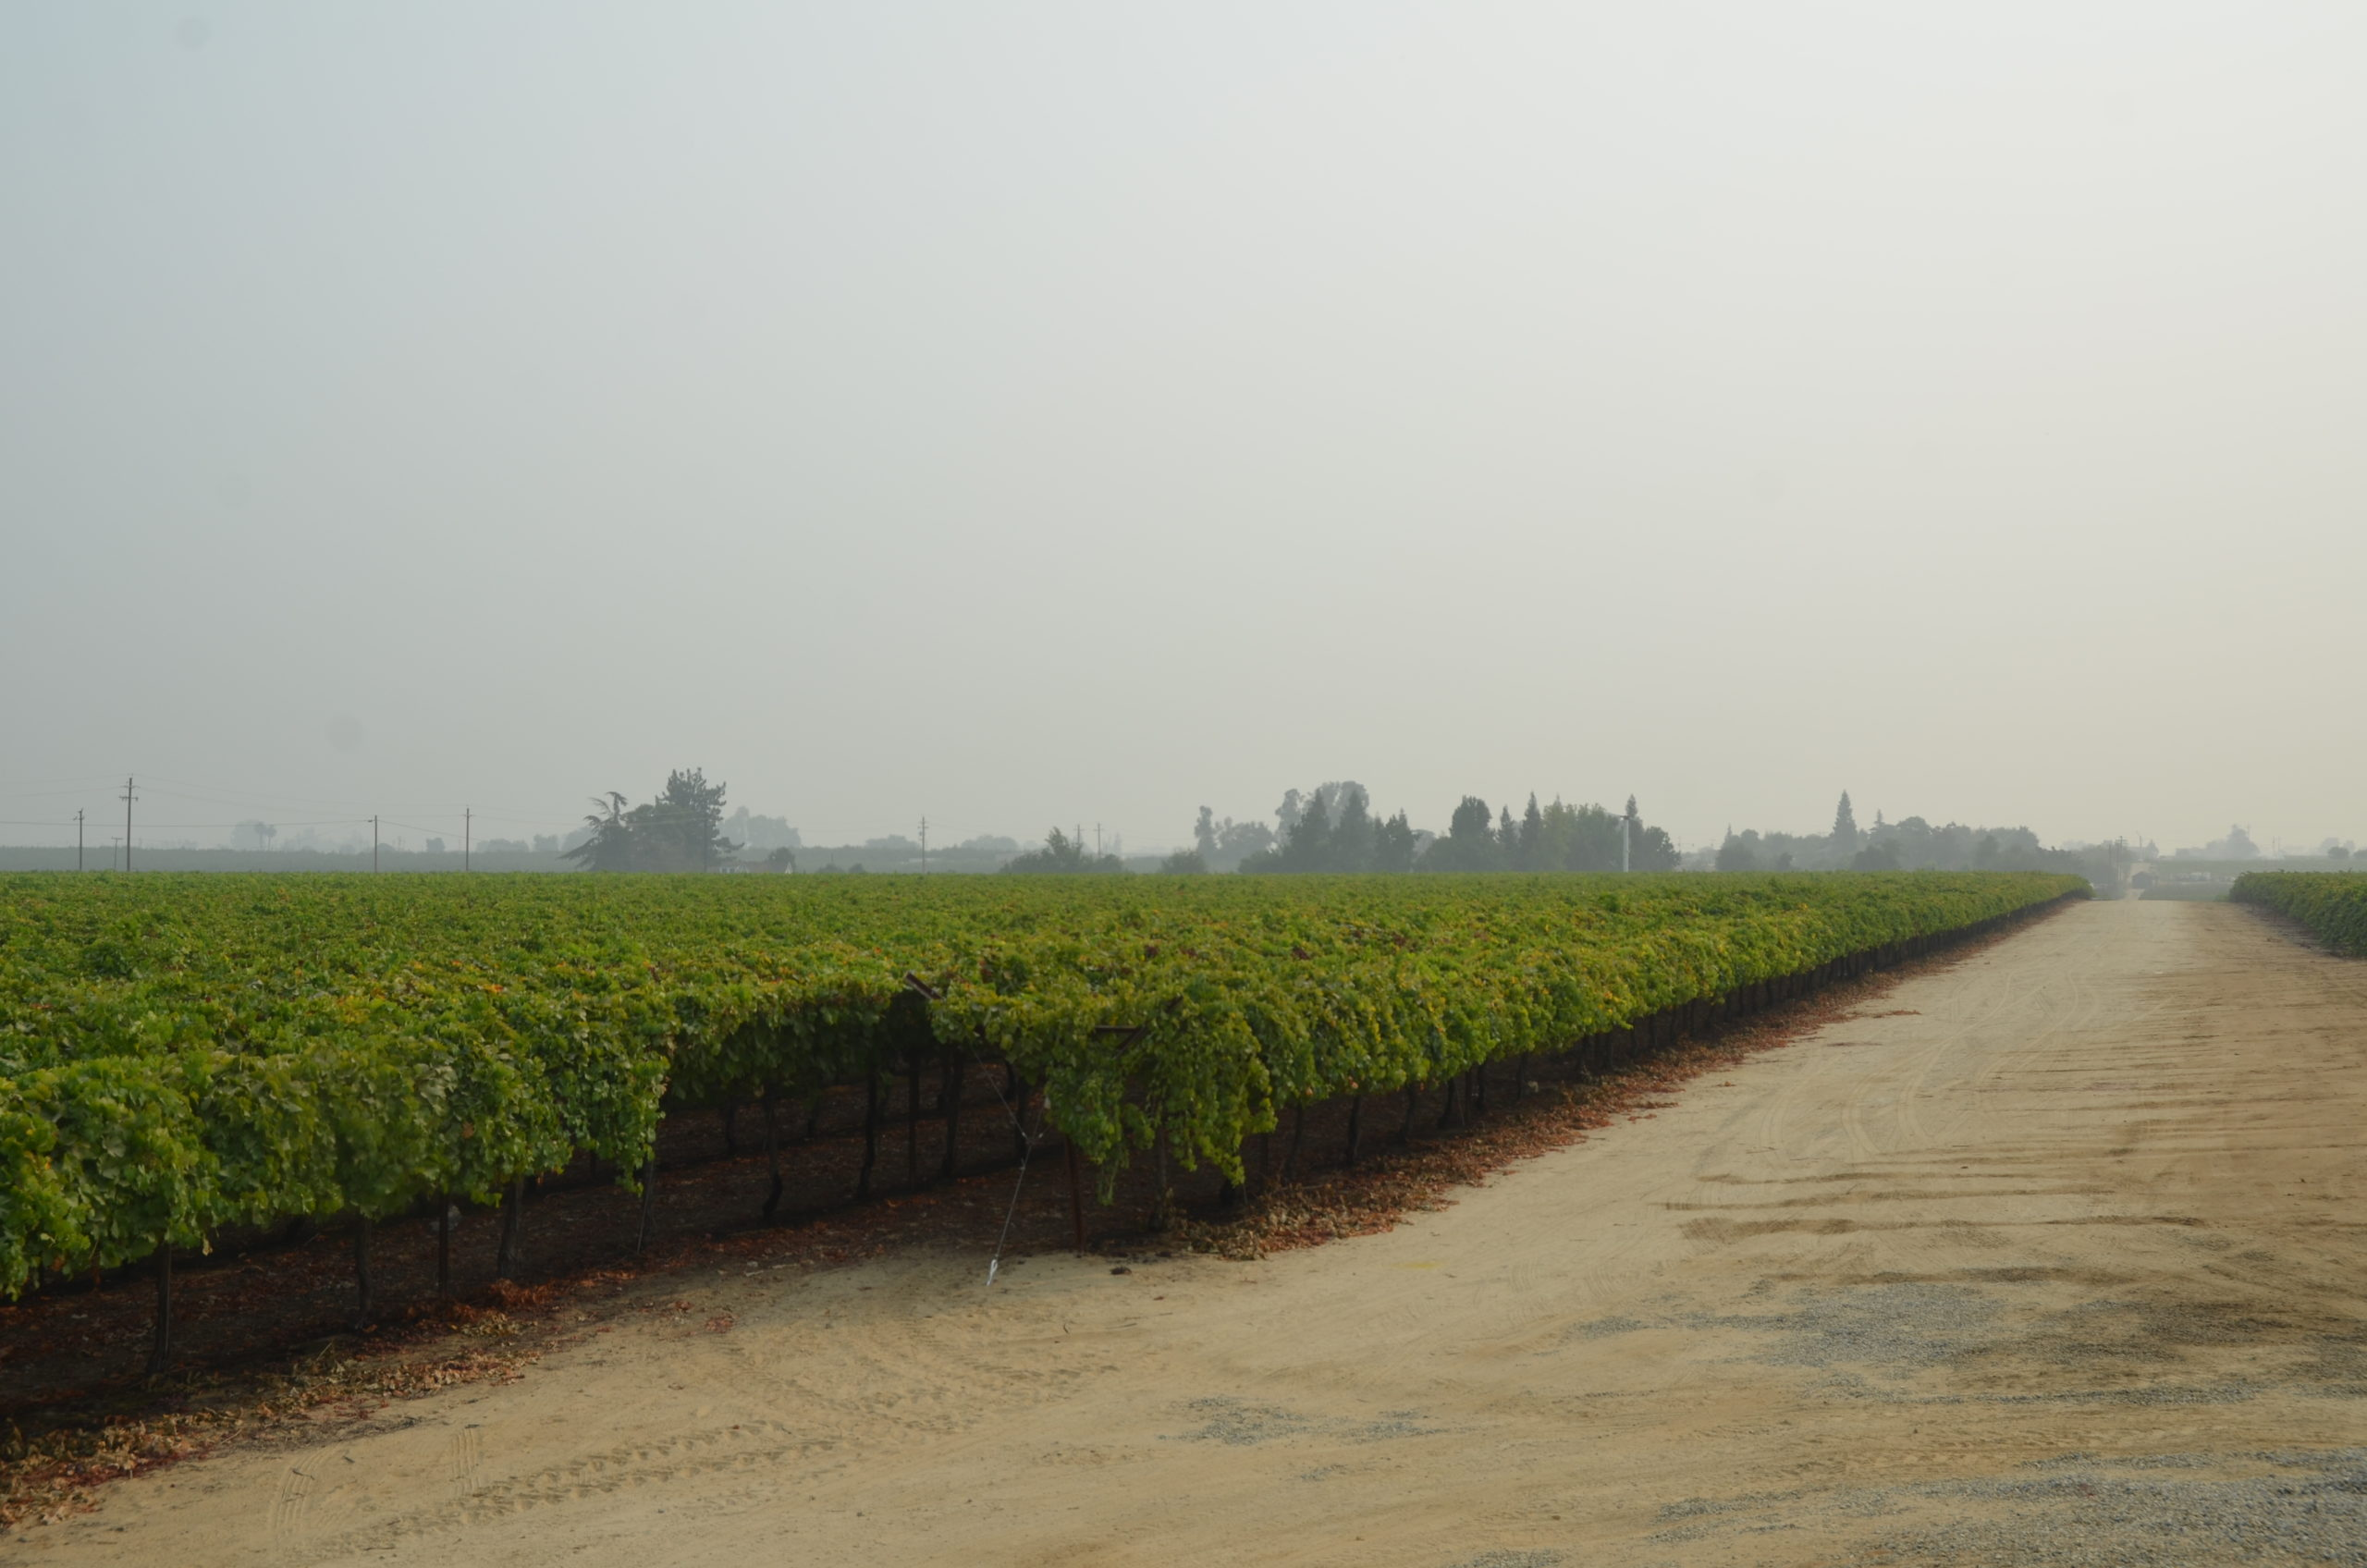 grape vineyard at HMC Farms with smoky sky